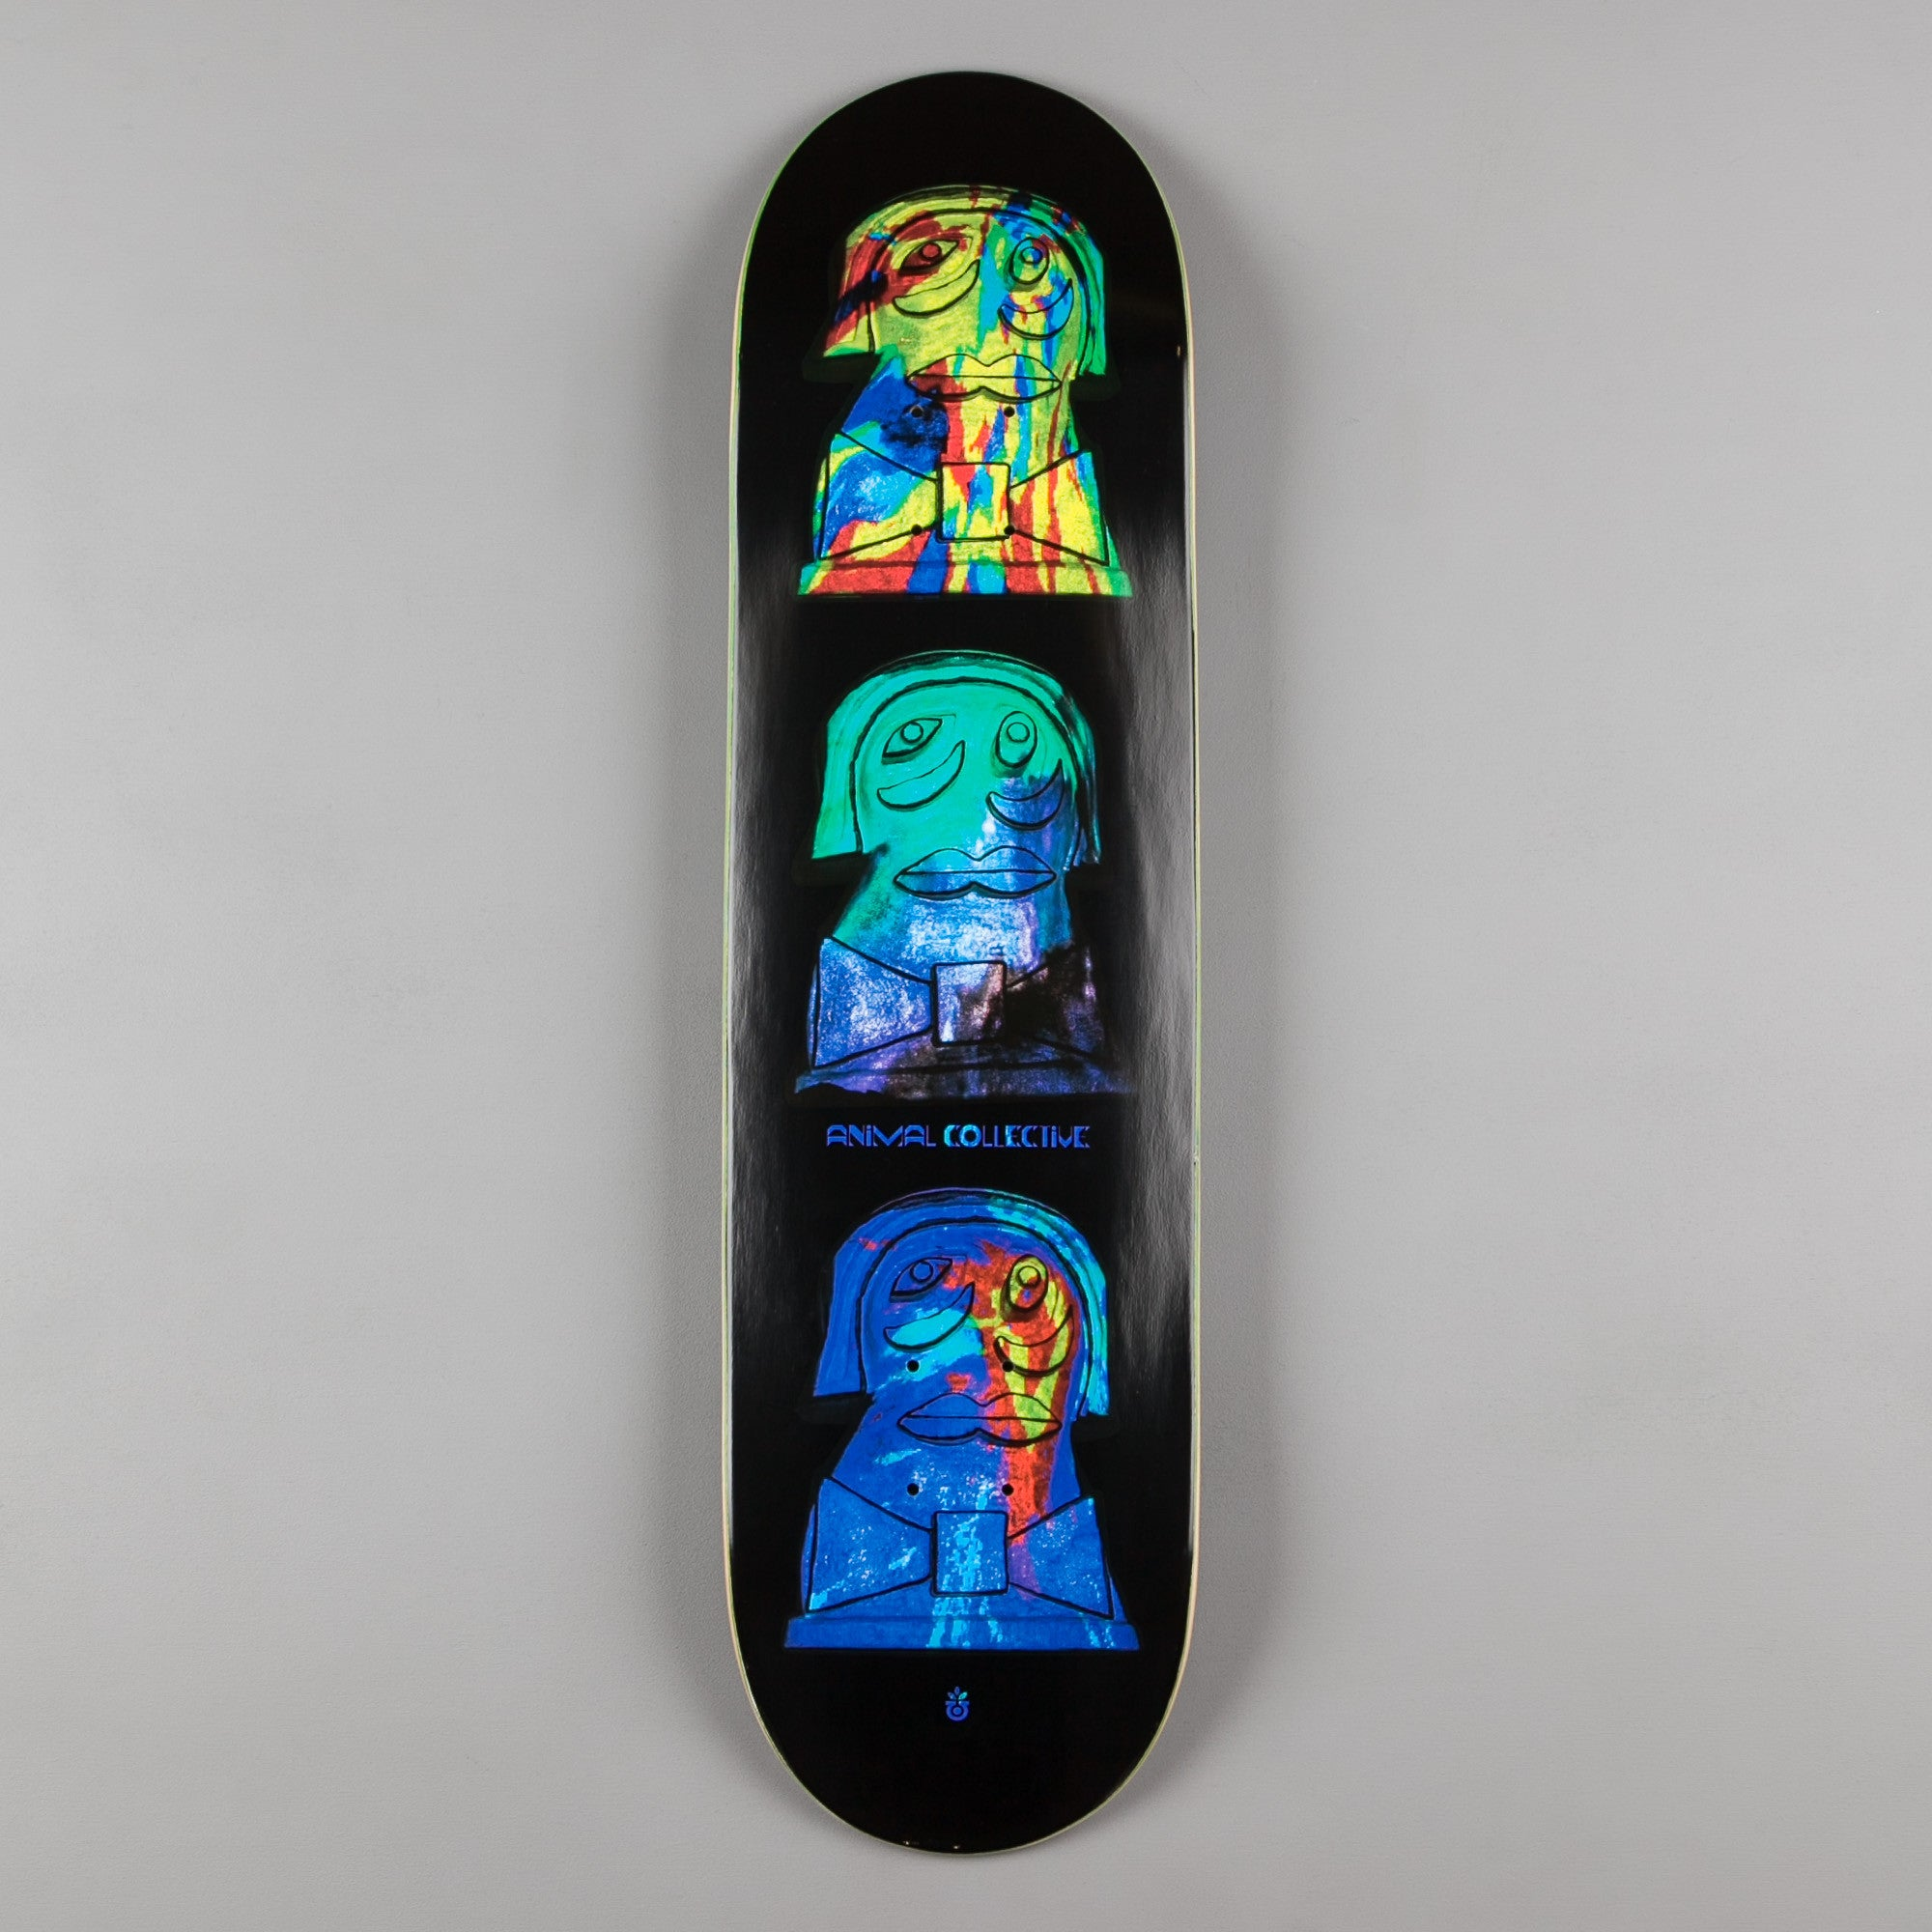 Habitat Skateboards x Animal Collective Deck - 8.0""